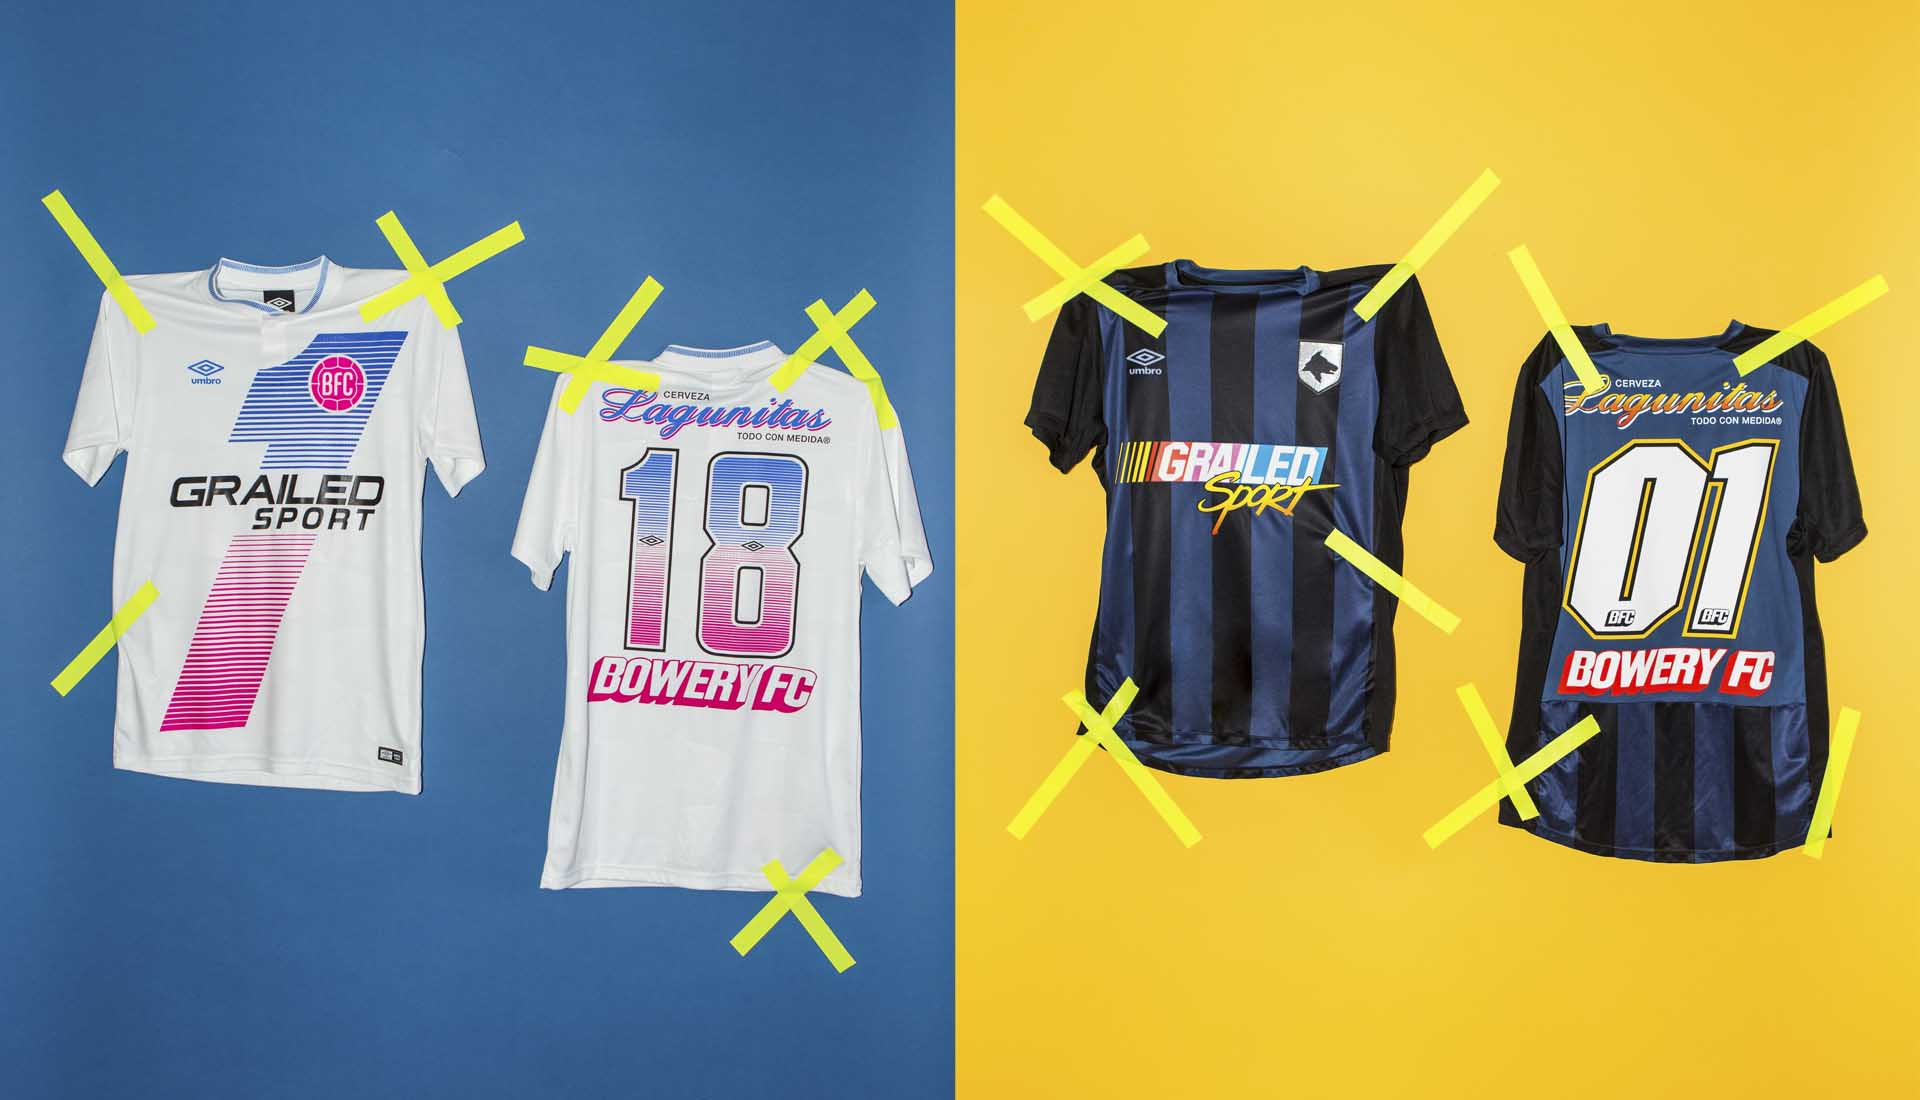 Bowery FC Drop Umbro Home   Away Jerseys for GRAILED - SoccerBible. 29d8fa027